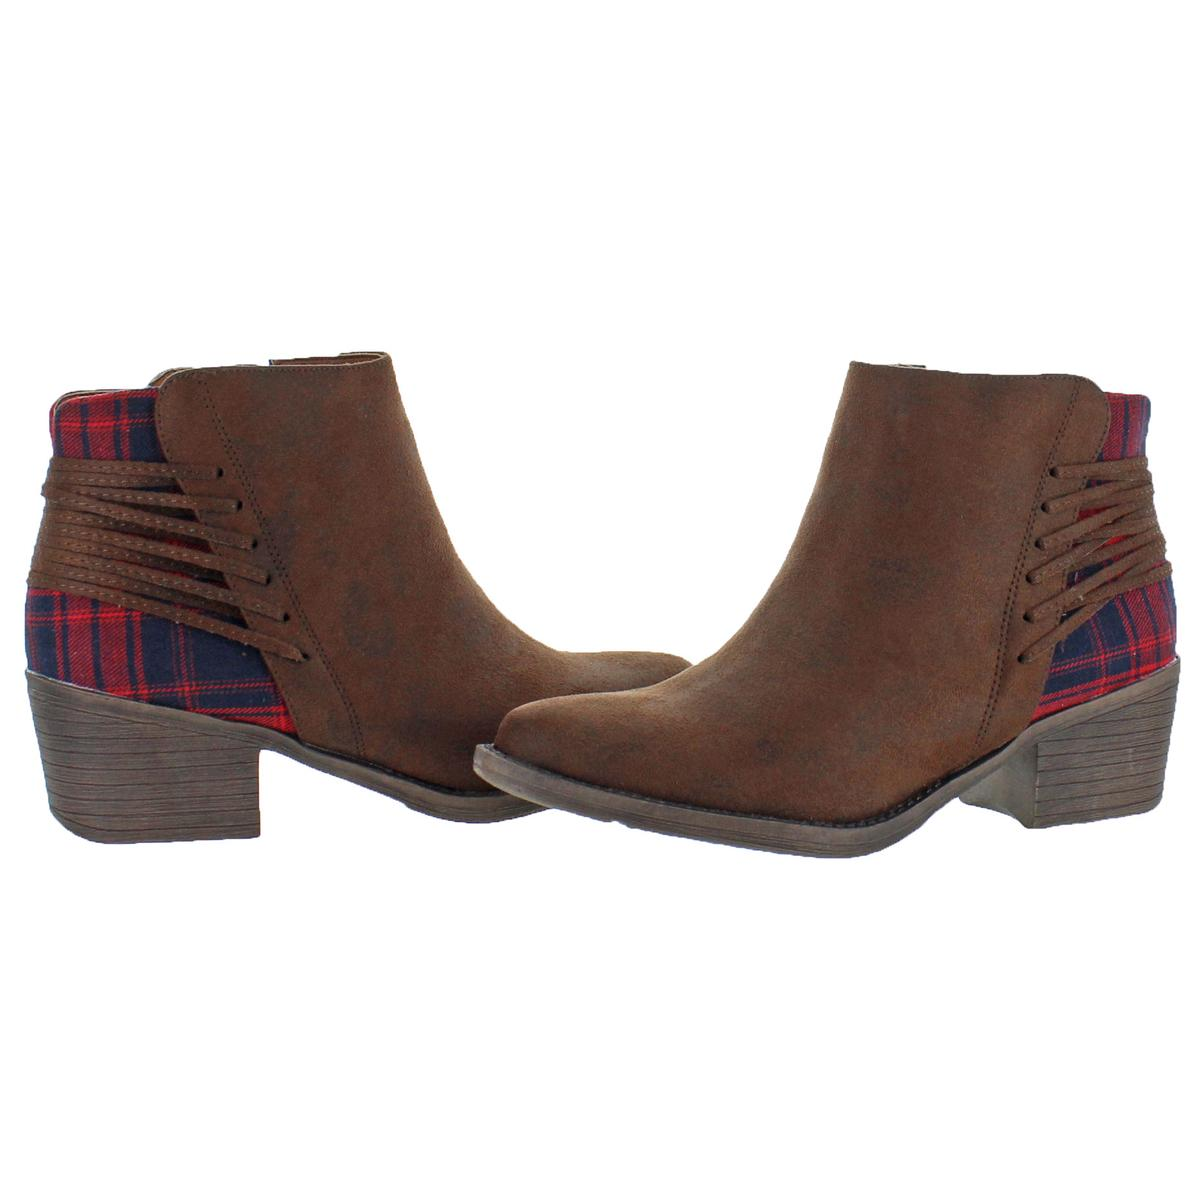 bfd75d2336d Volatile Accolade Women's Suede Plaid Stacked Heel Ankle Bootie Boots